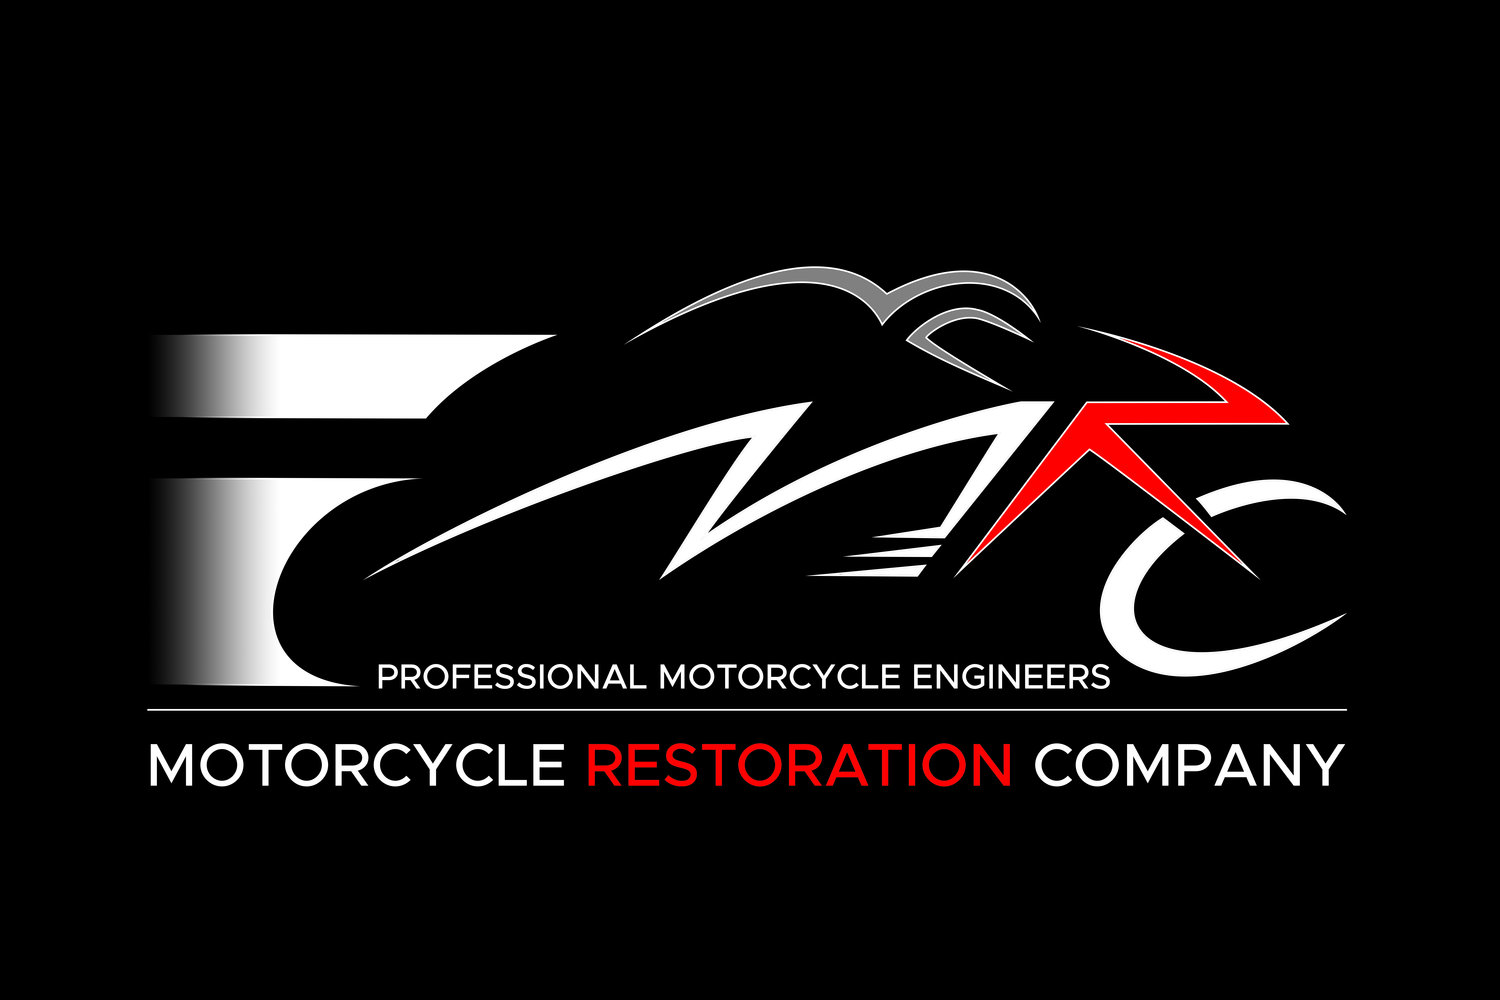 Motorcycle Restoration Company